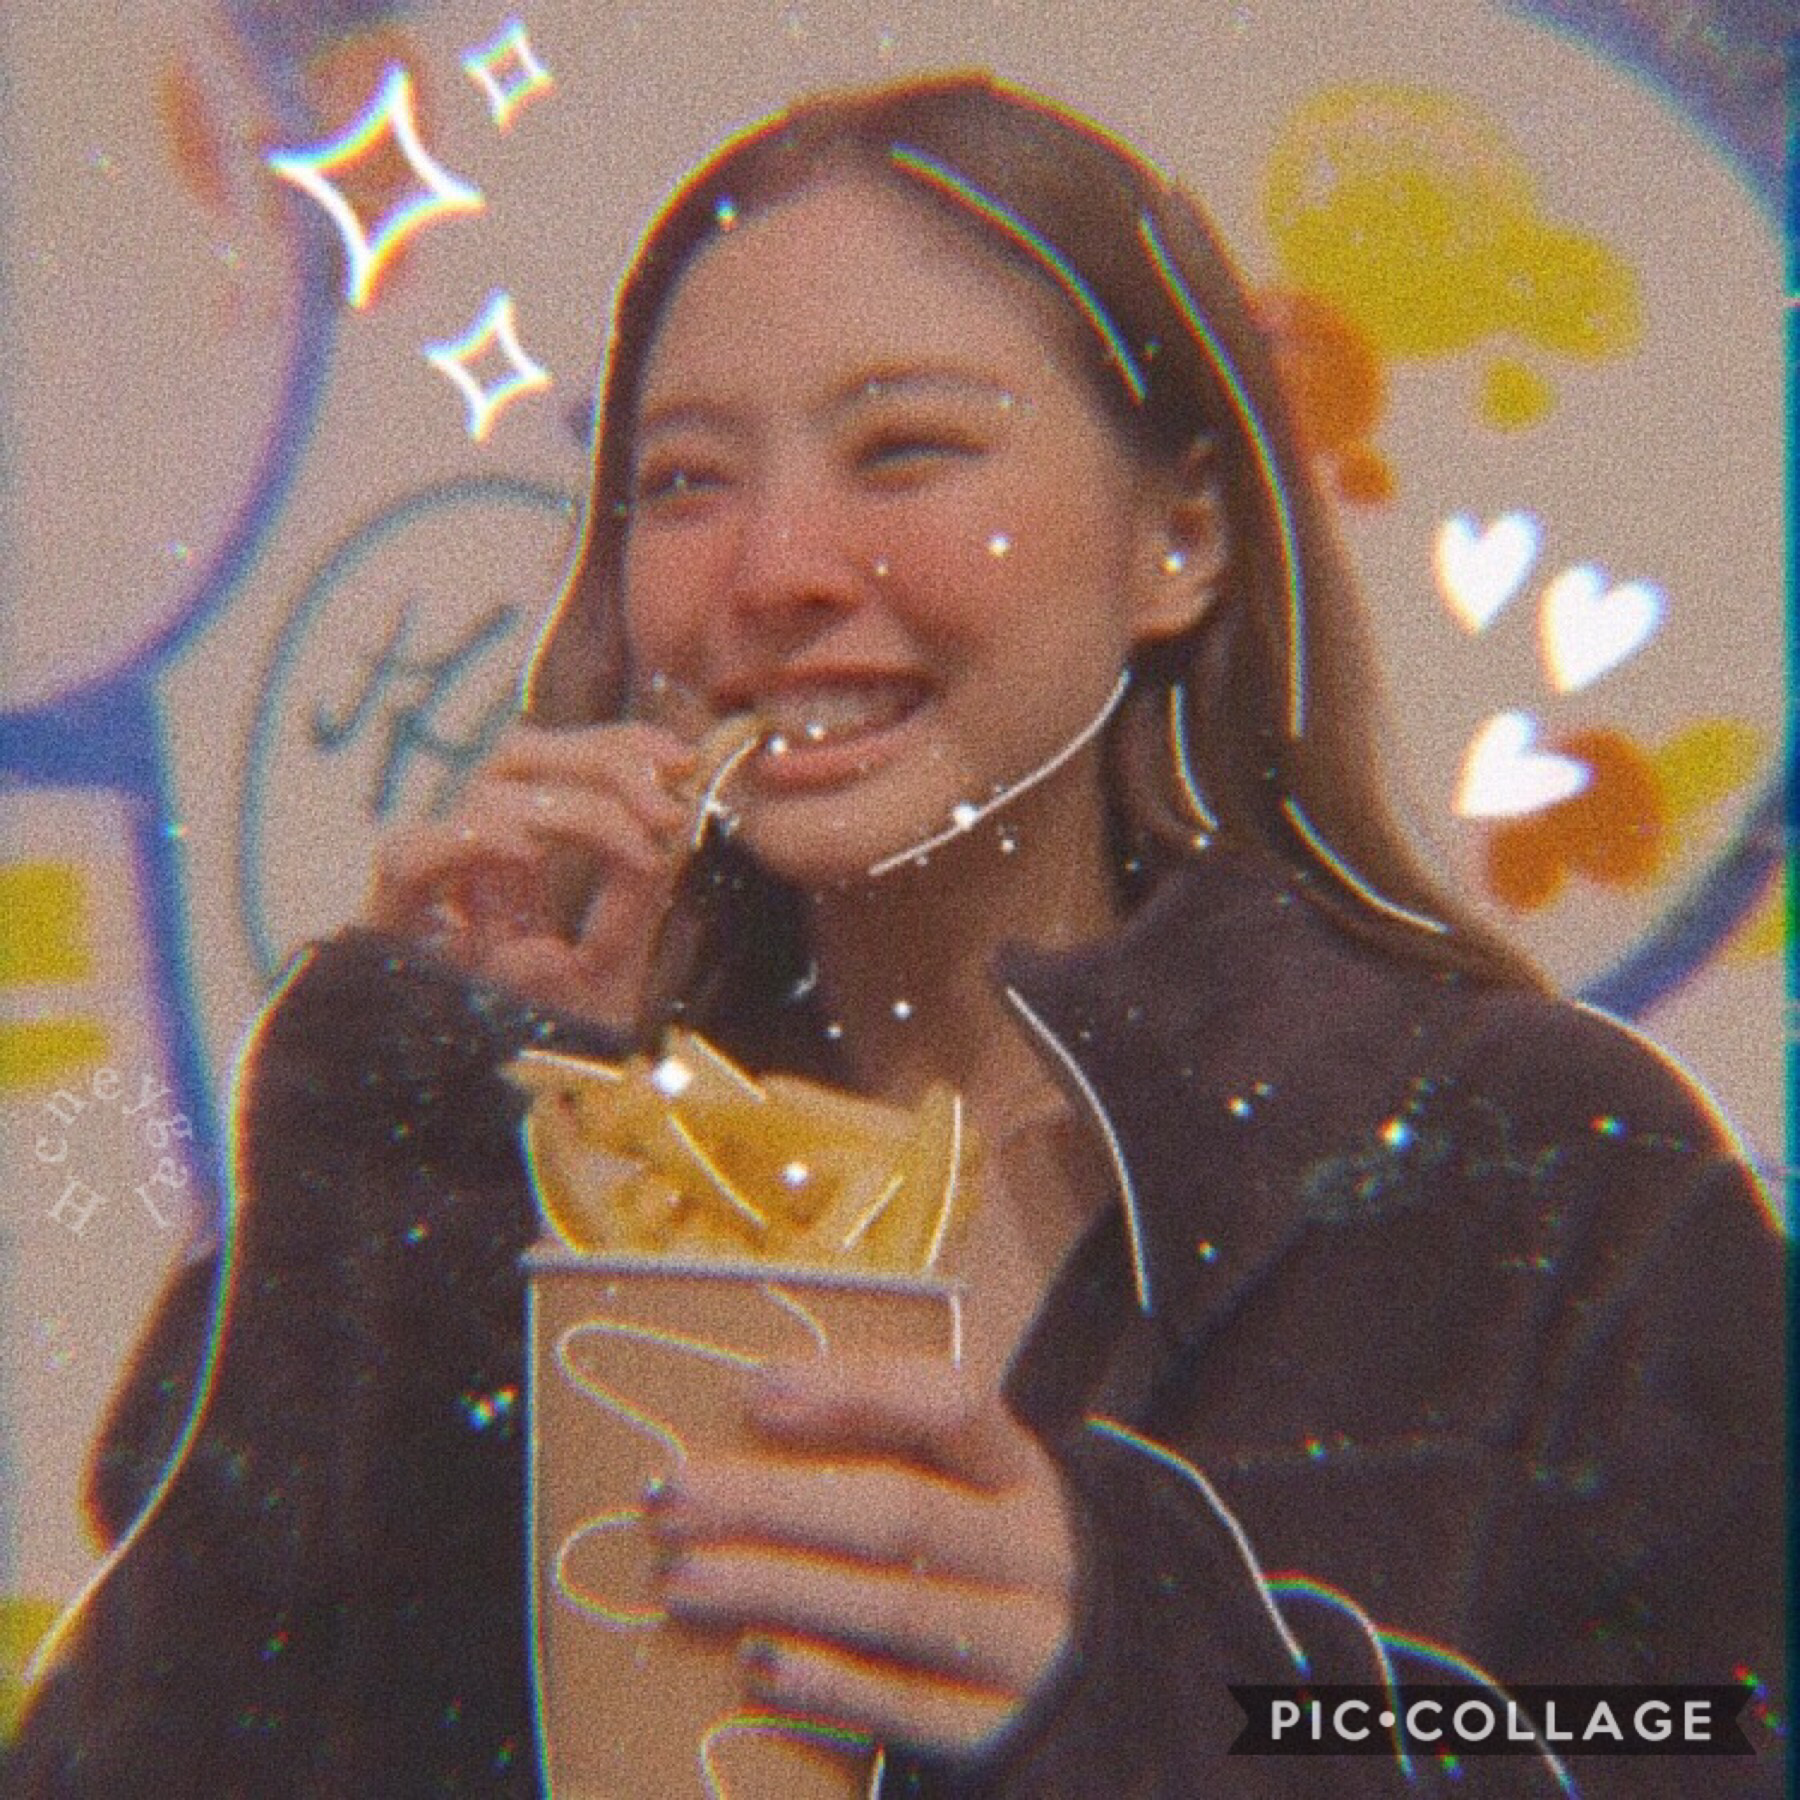 ˗ˏˋ 𝑡𝑎𝑝 𝑚𝑒 ˎˊ˗ ⁺ I'm back...again but this time w/ ab edit of soft Jennie ♡ ⁺ little update - school starts next week :(( and I don't even know my schedule  ⁺ tysm for all the love